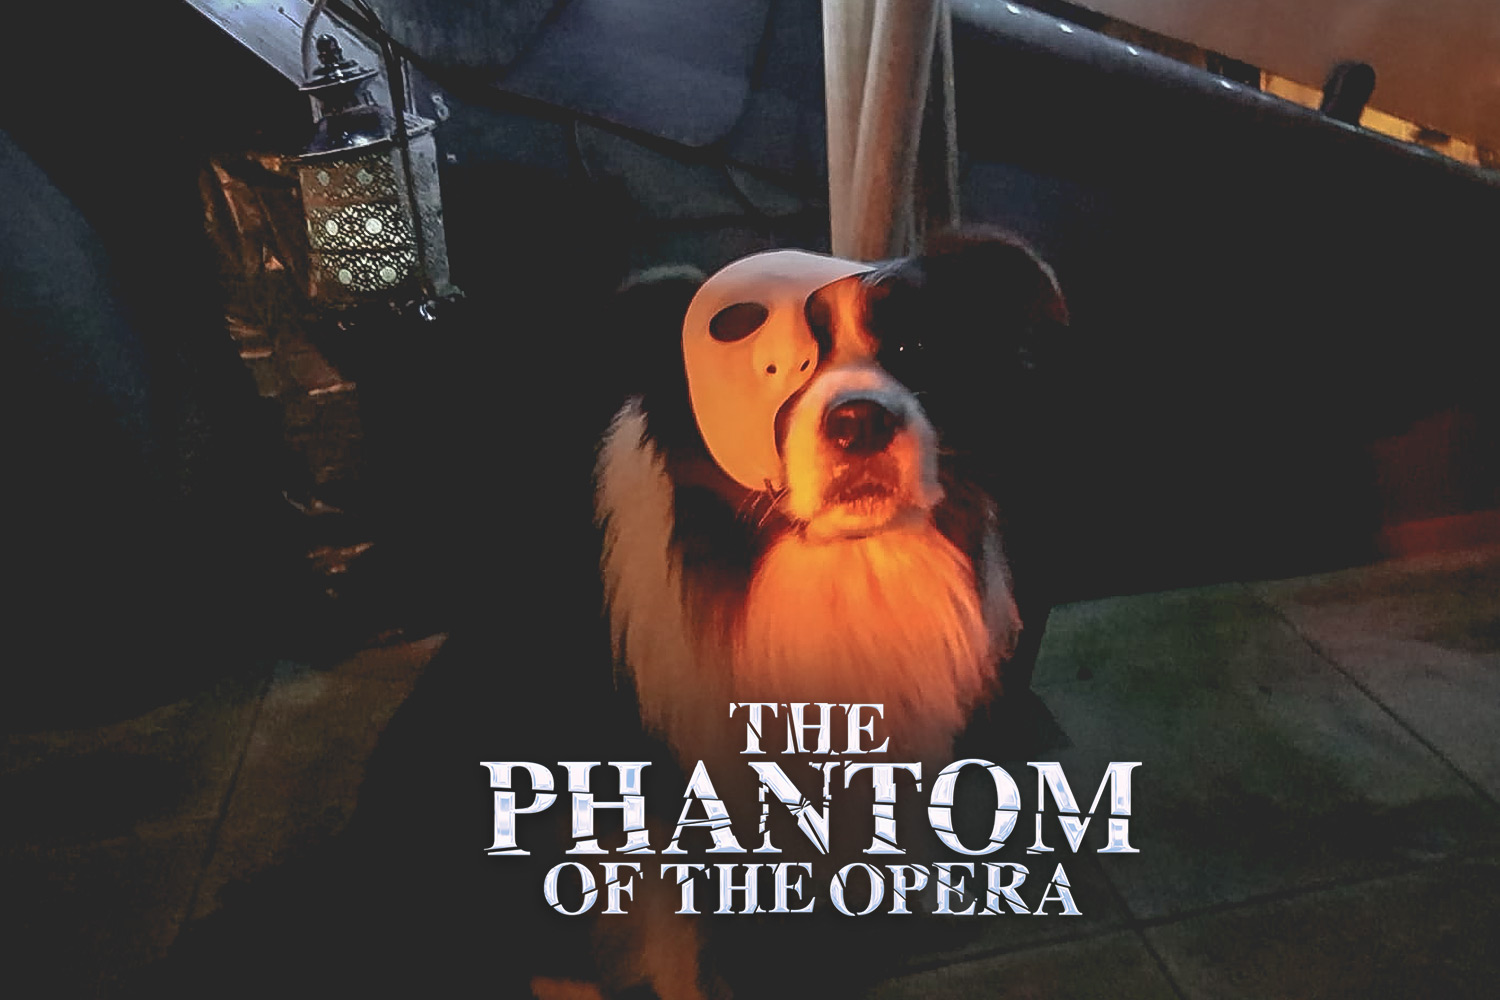 Buddy (CH Broadmeadows Body and Soul) als »Phantom der Oper«